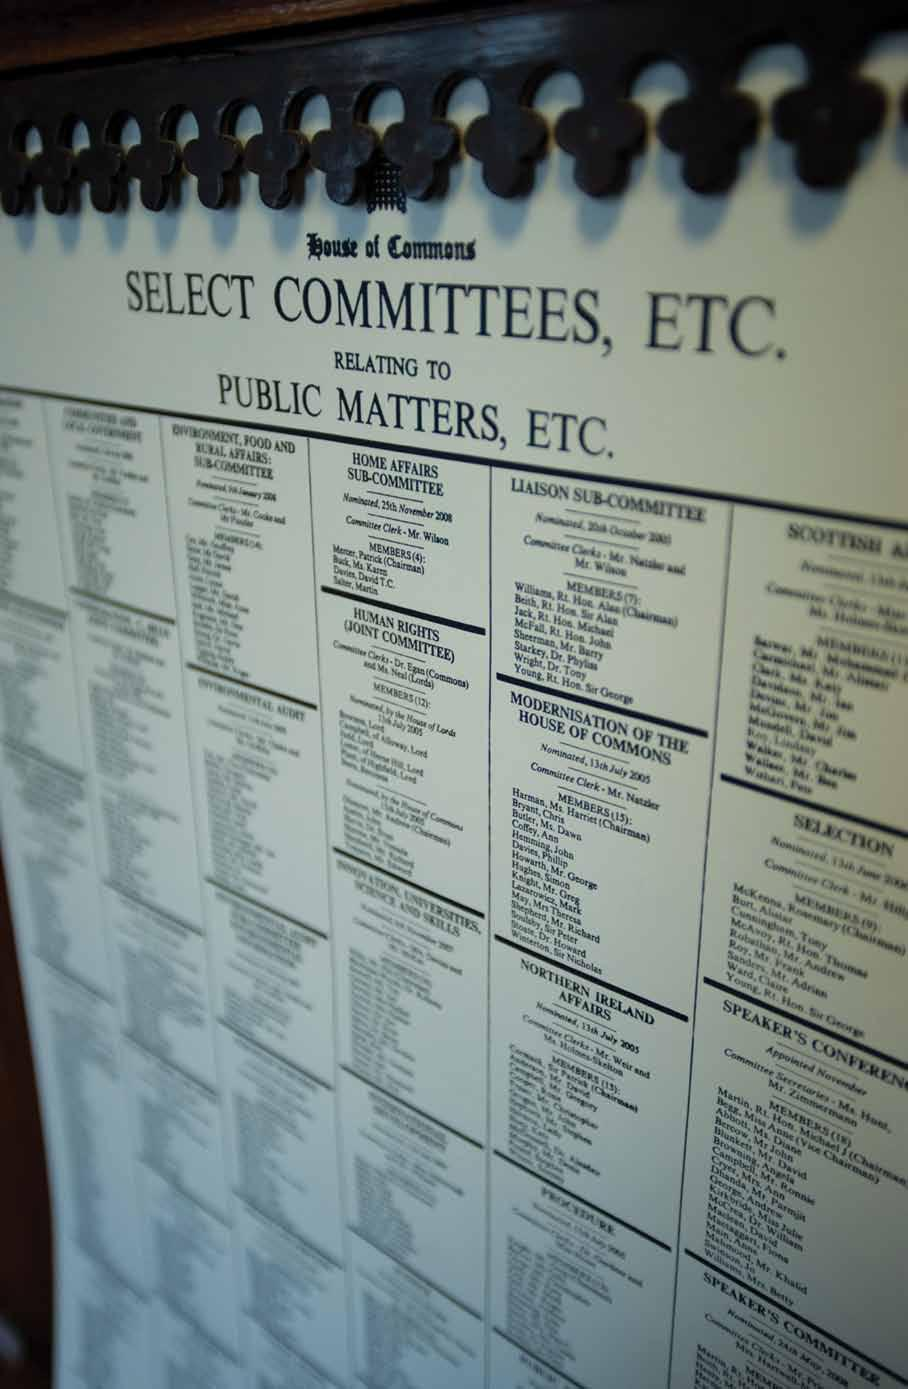 Select committees may sometimes be appointed on an ad hoc basis to examine, take evidence and report on some other matter such as reform of the House itself.